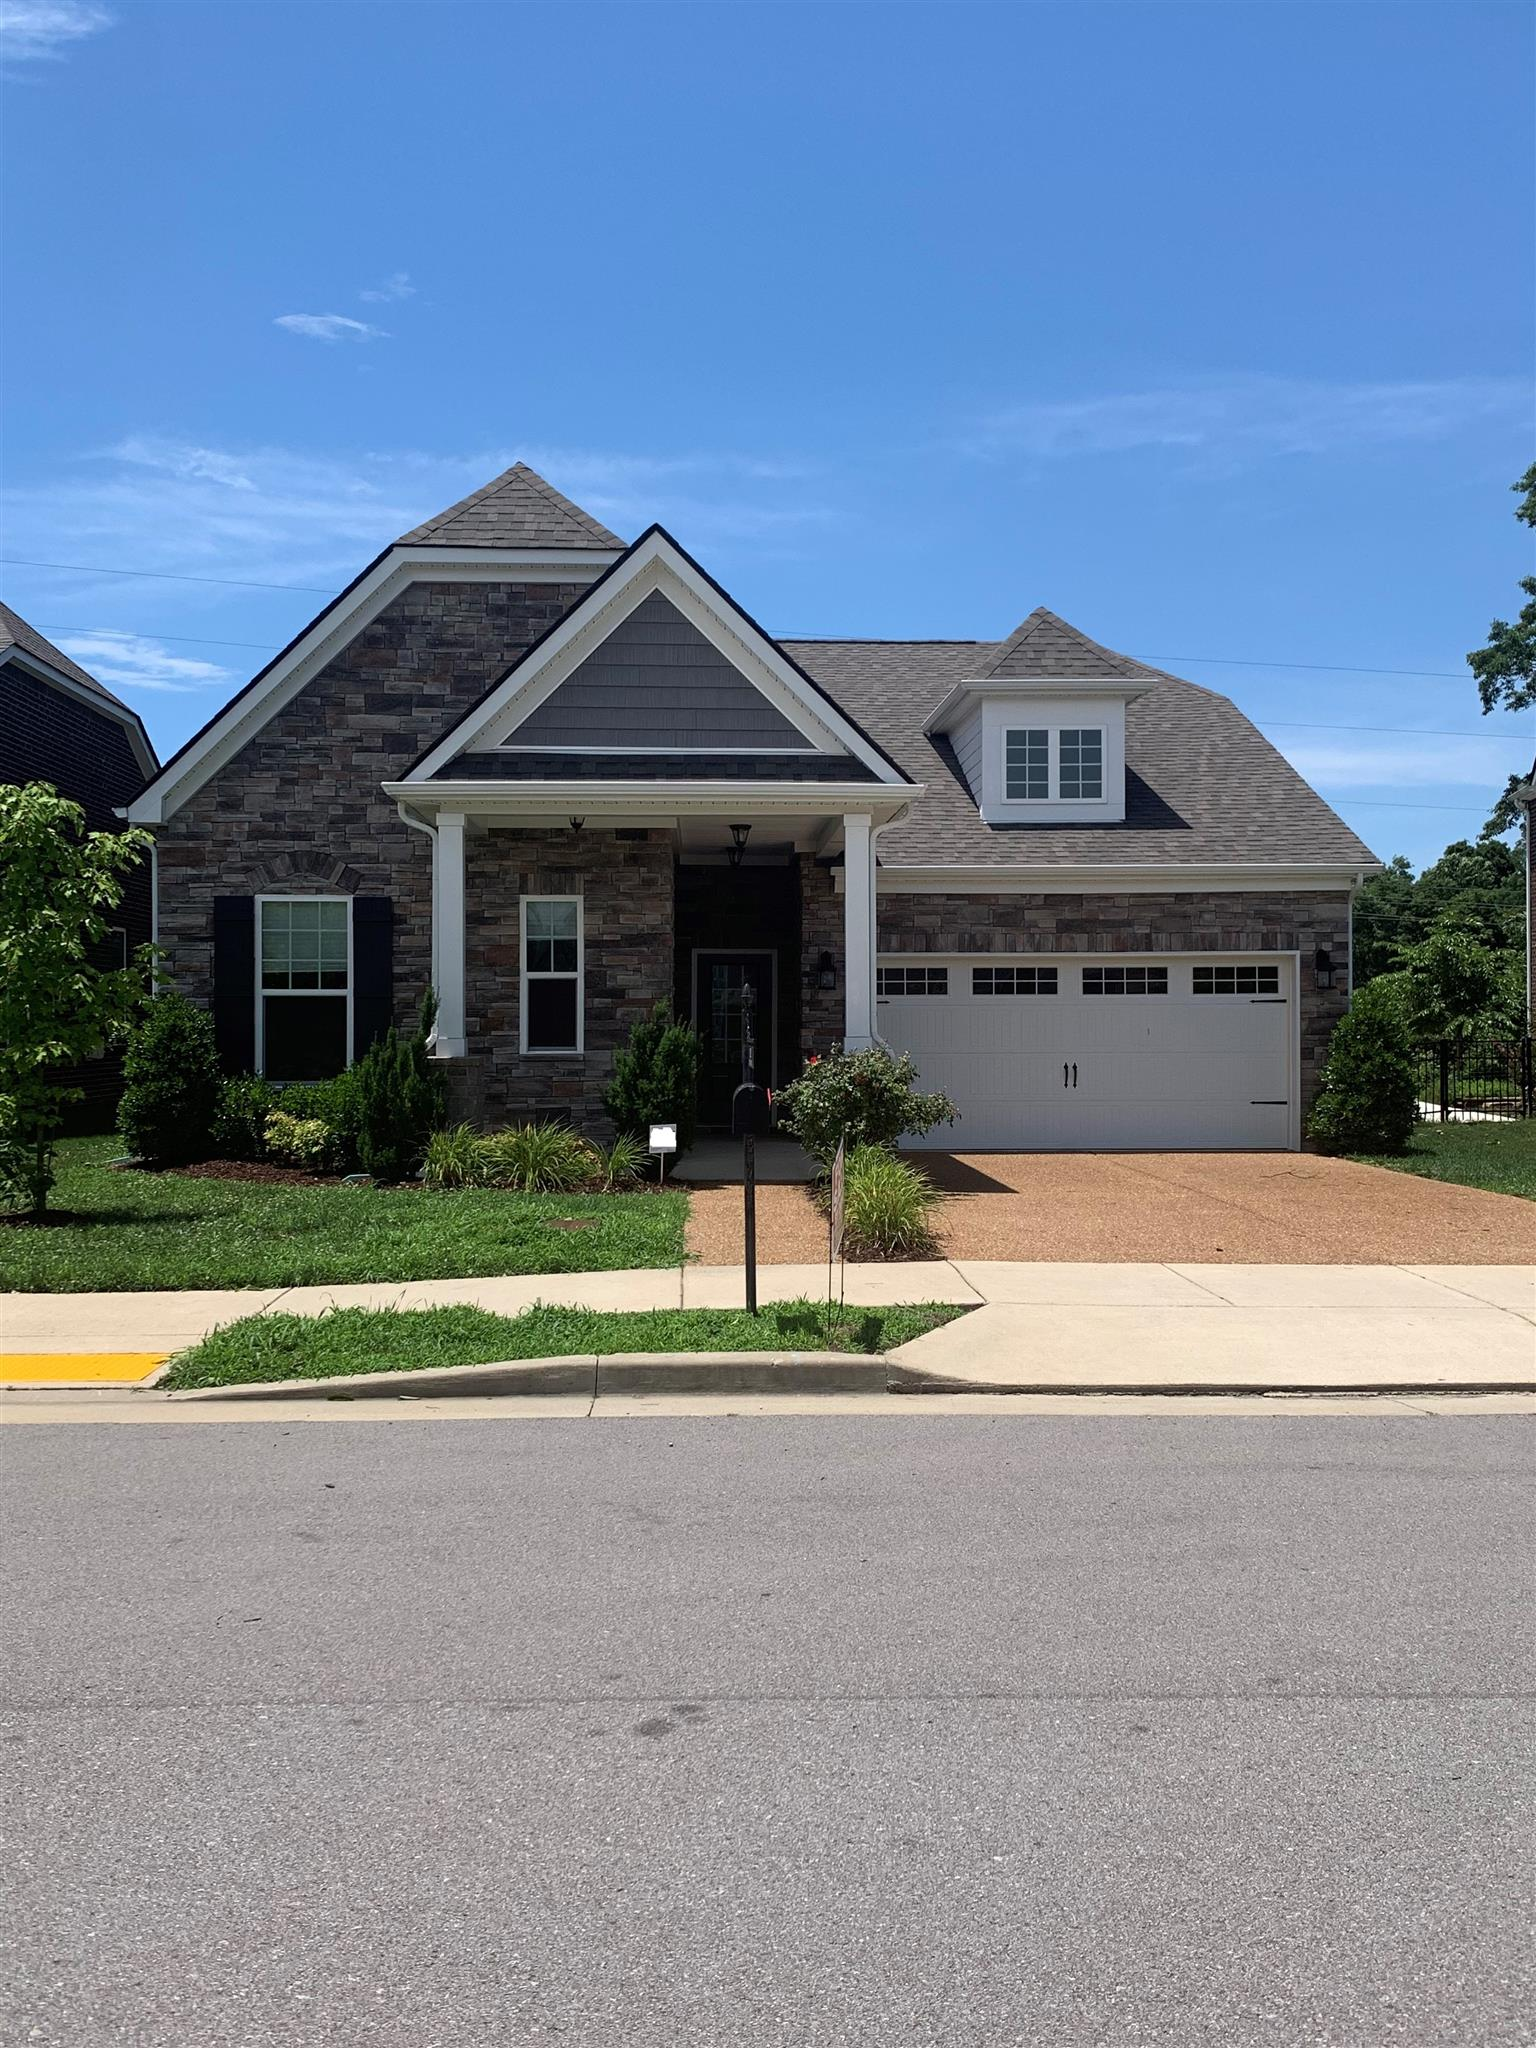 1632 Elysian Way, Nashville - Midtown in Davidson County County, TN 37203 Home for Sale